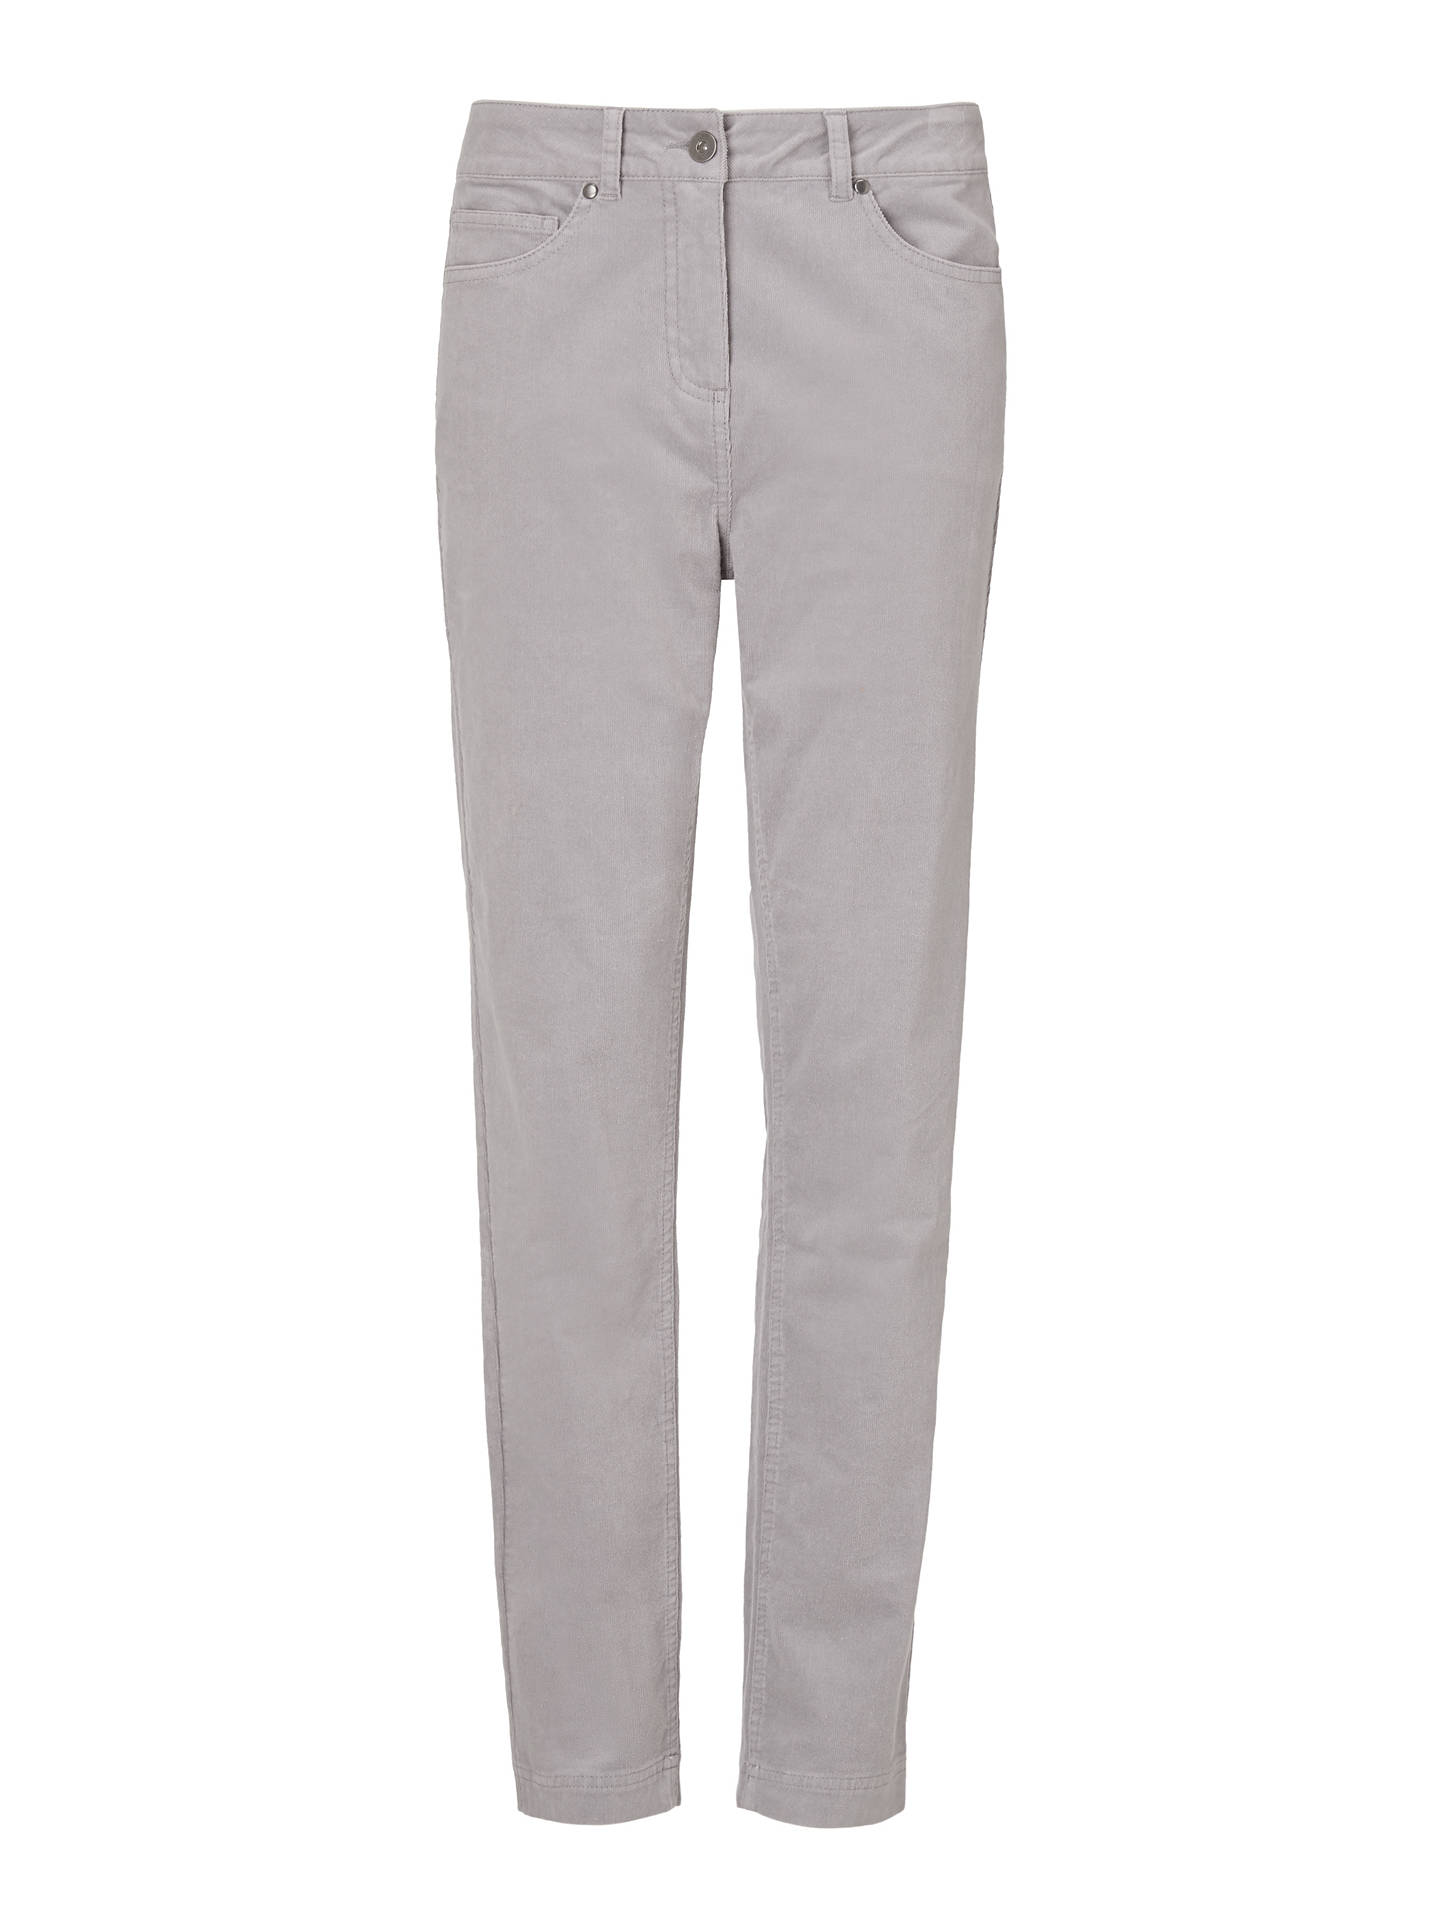 Buy John Lewis & Partners Corduroy Straight Leg Jeans, Silver Grey, 8 Online at johnlewis.com